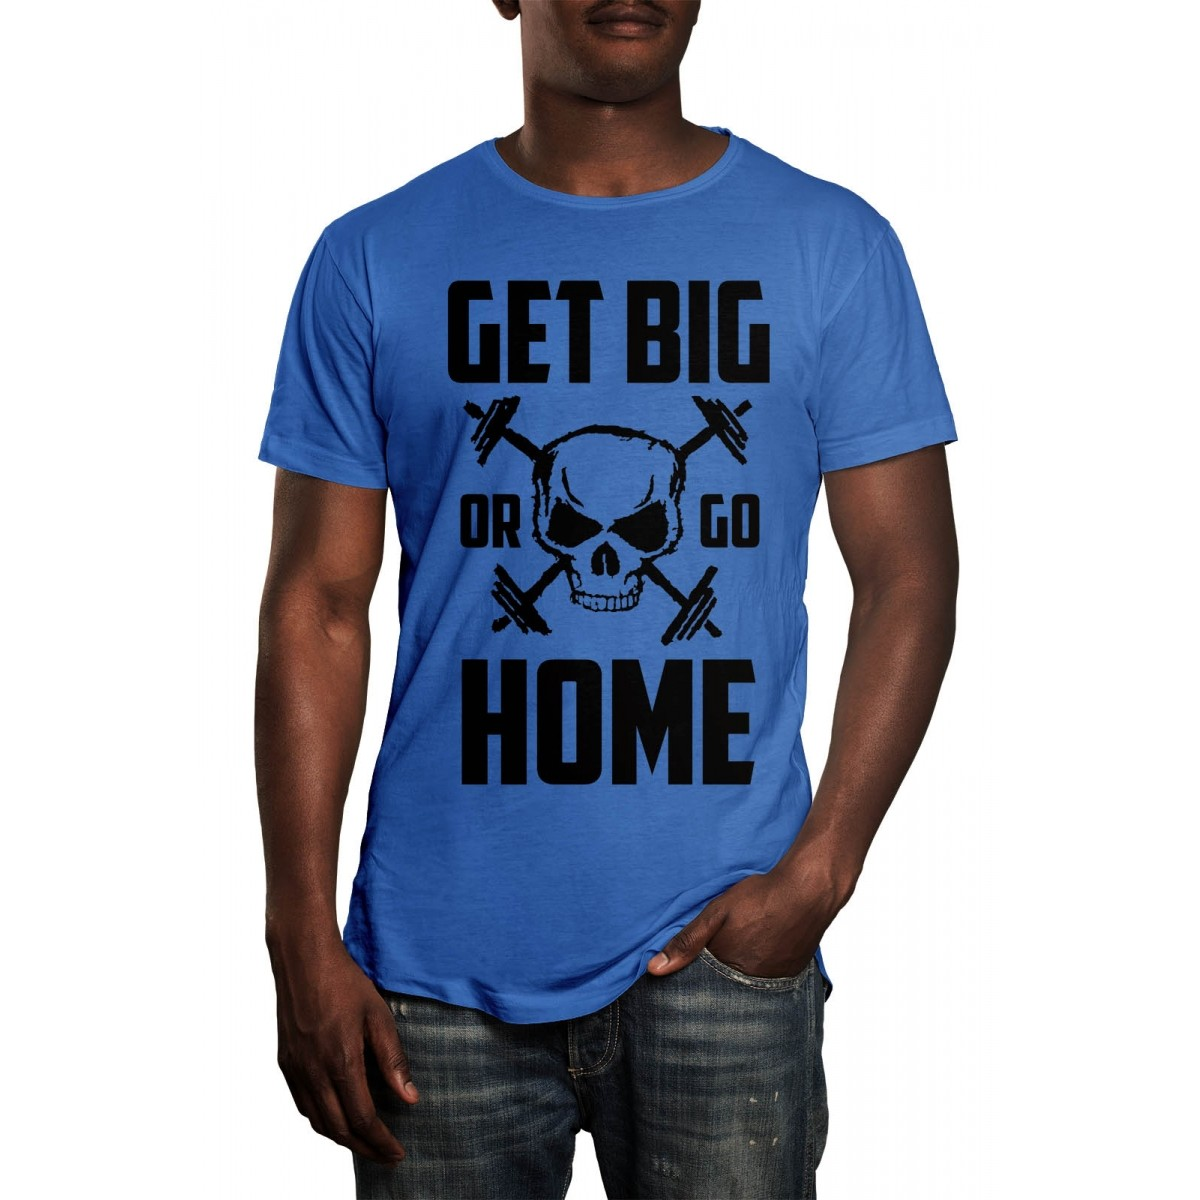 Camiseta HShop Get Big Or Go Home Azul  - HShop